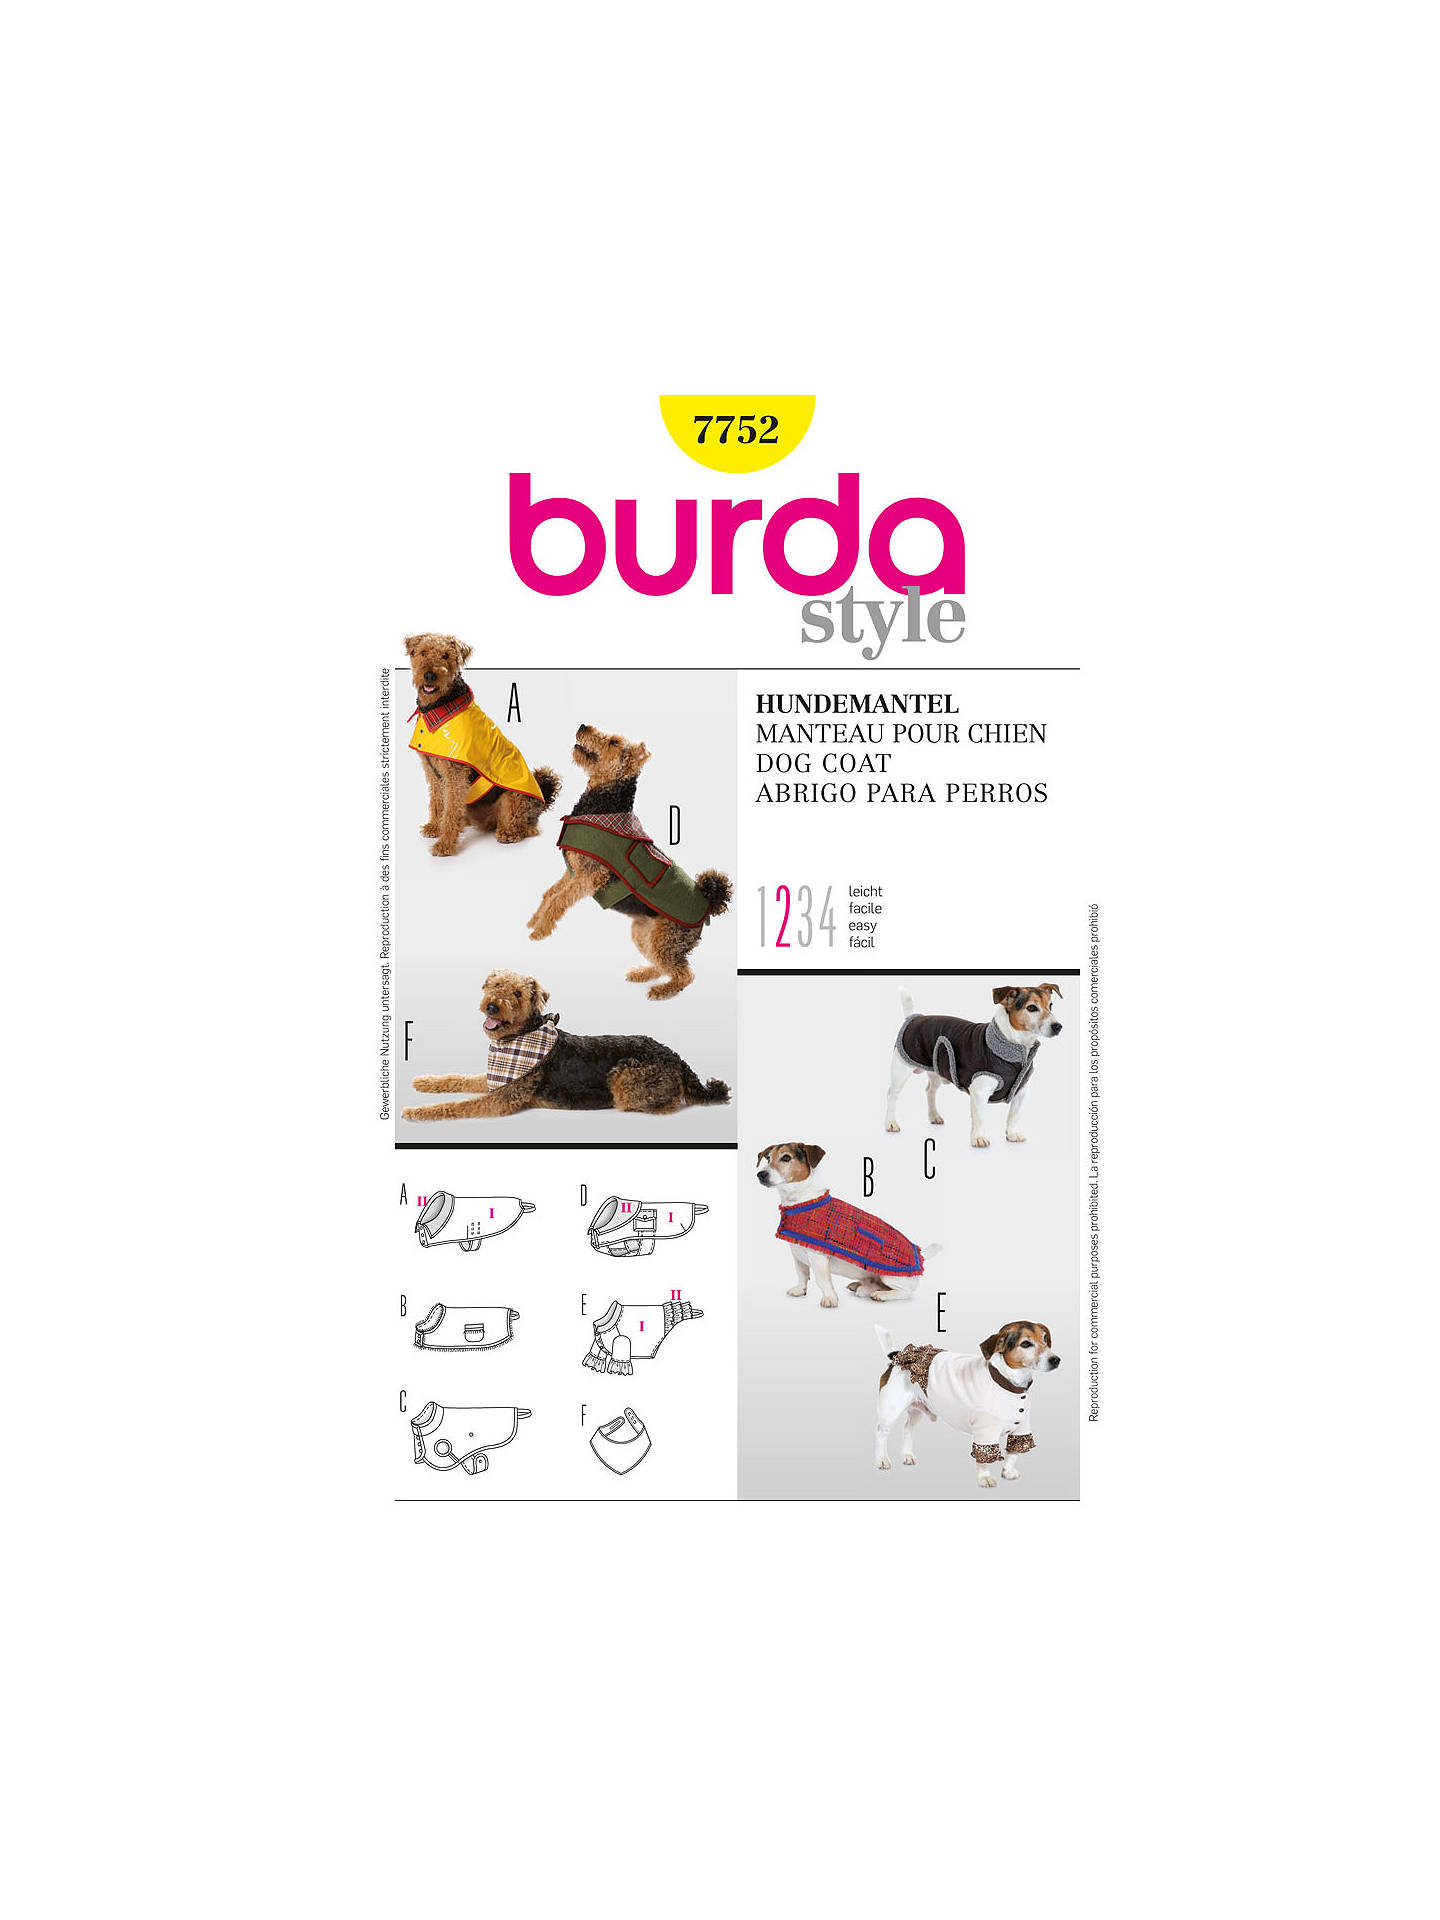 Burda Dog Coat Sewing Pattern 7752 At John Lewis Partners